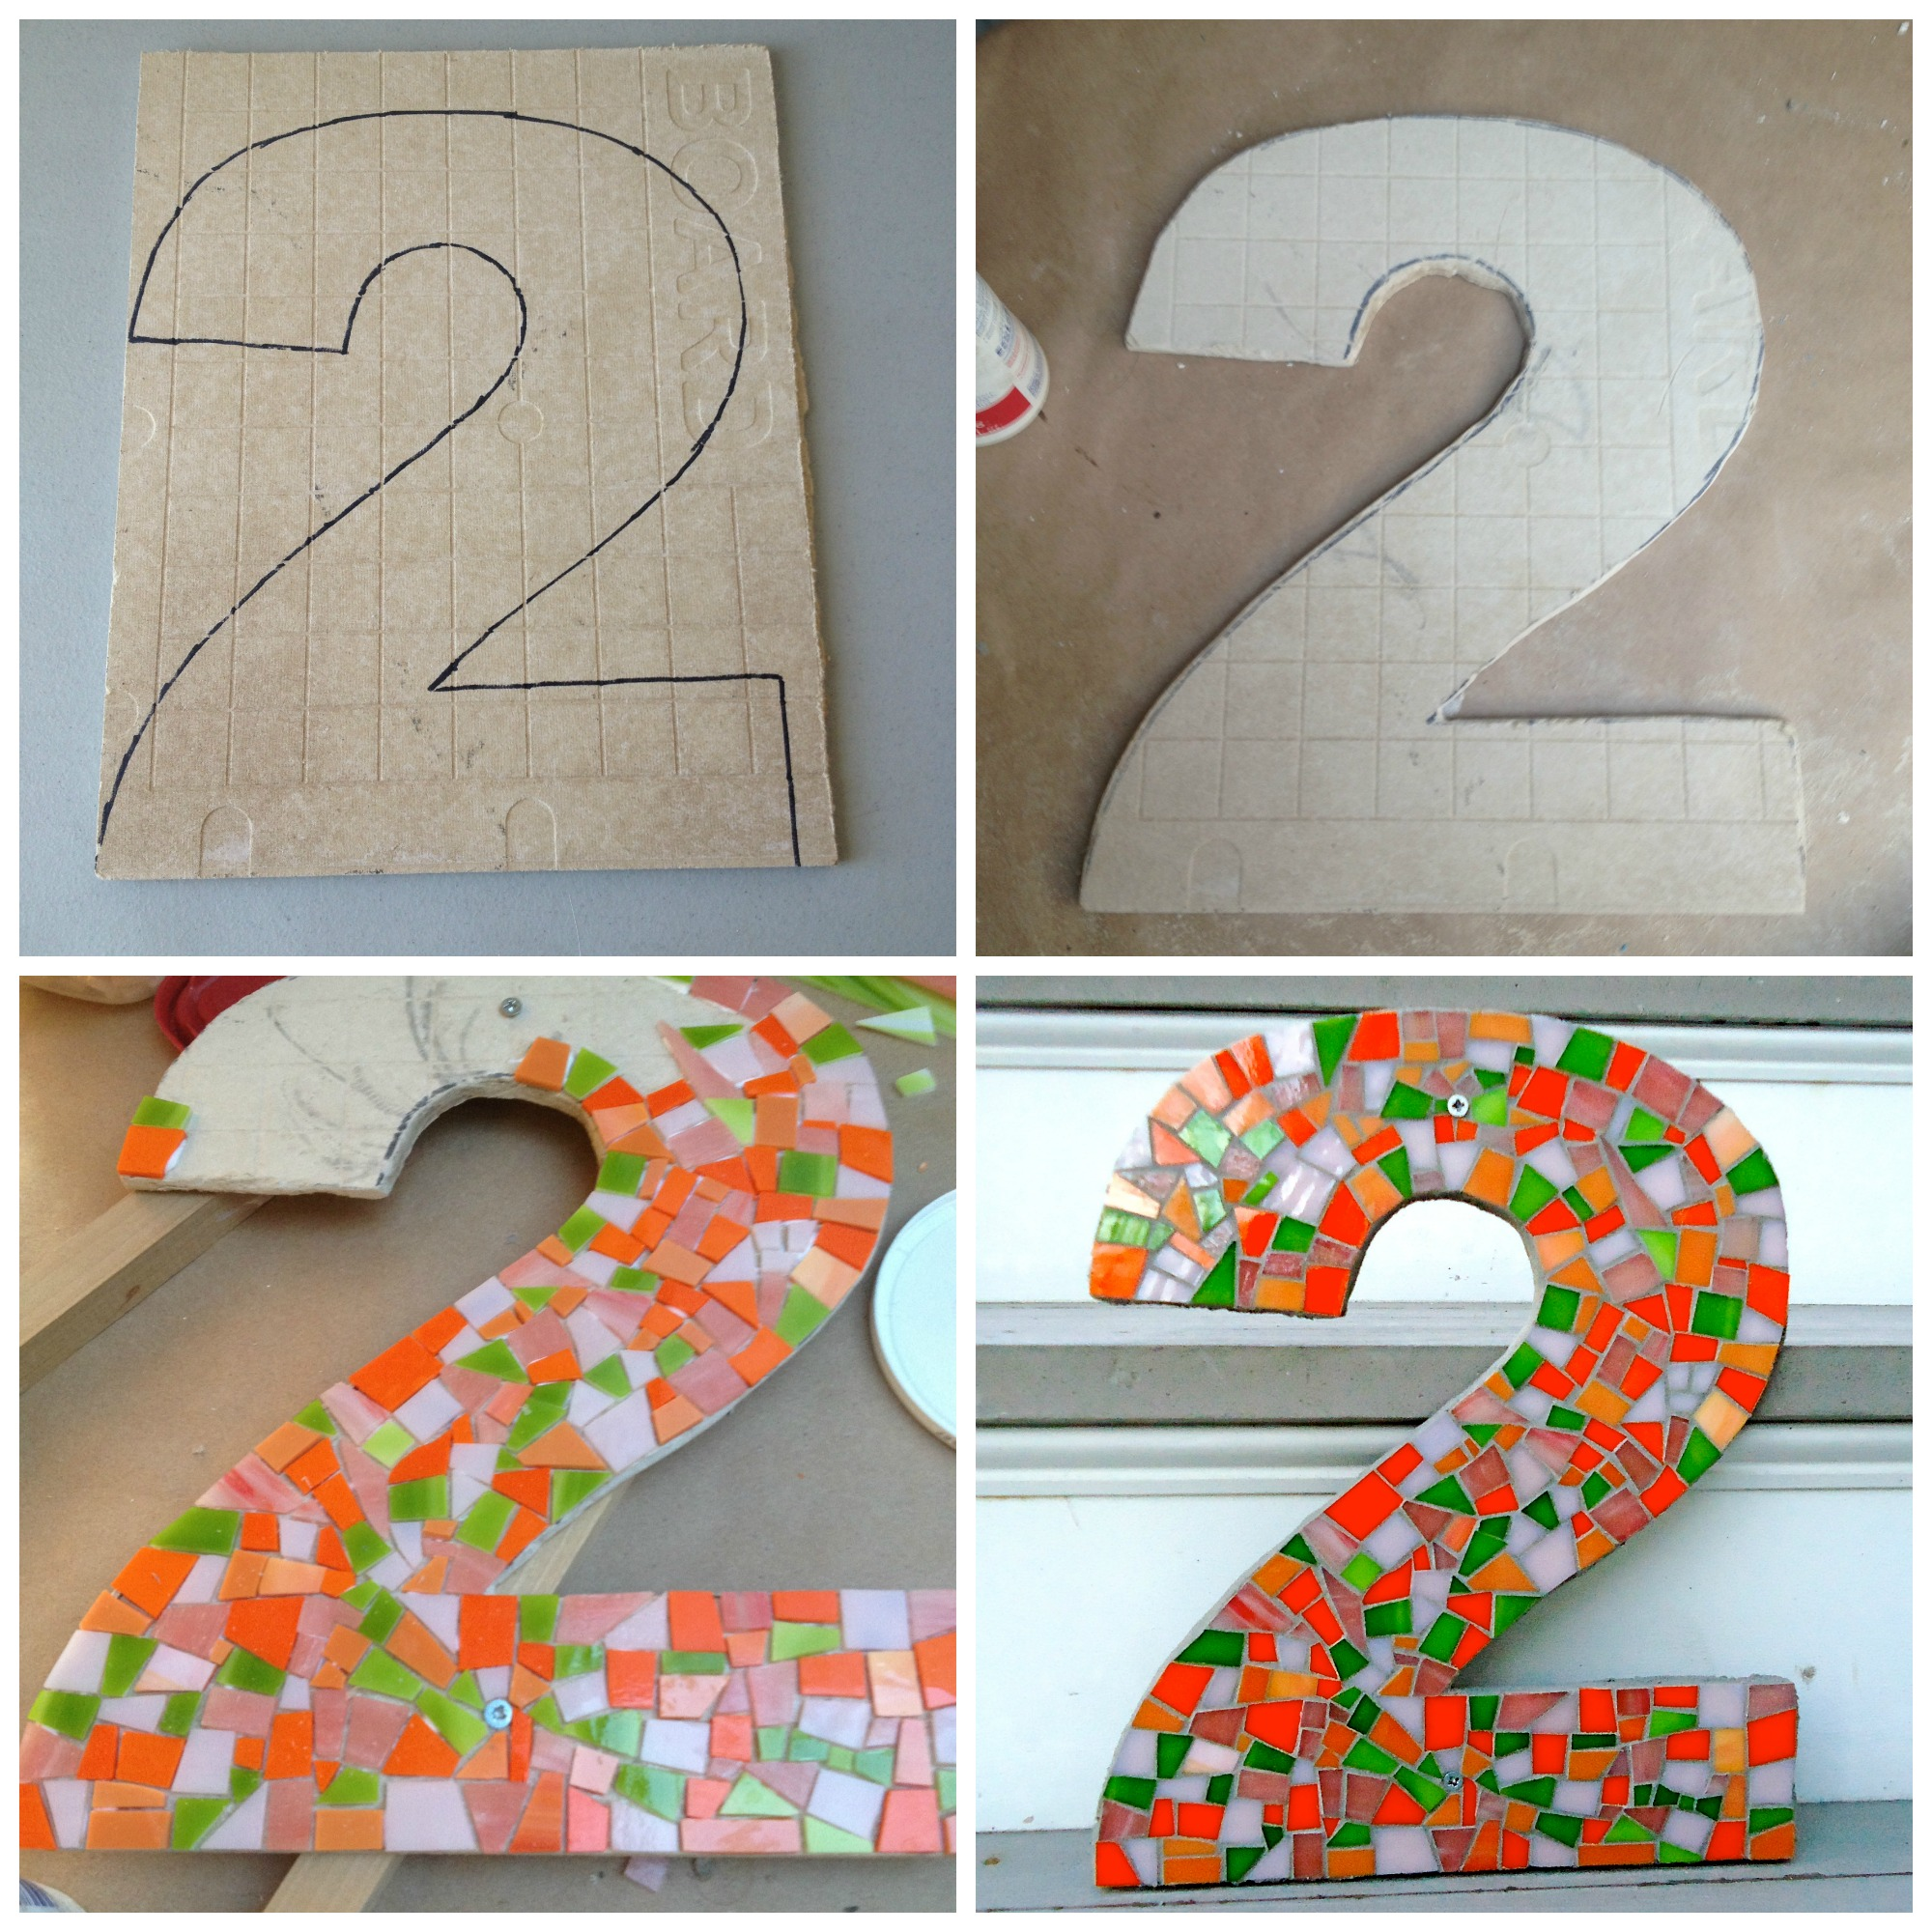 House Number Process.jpg